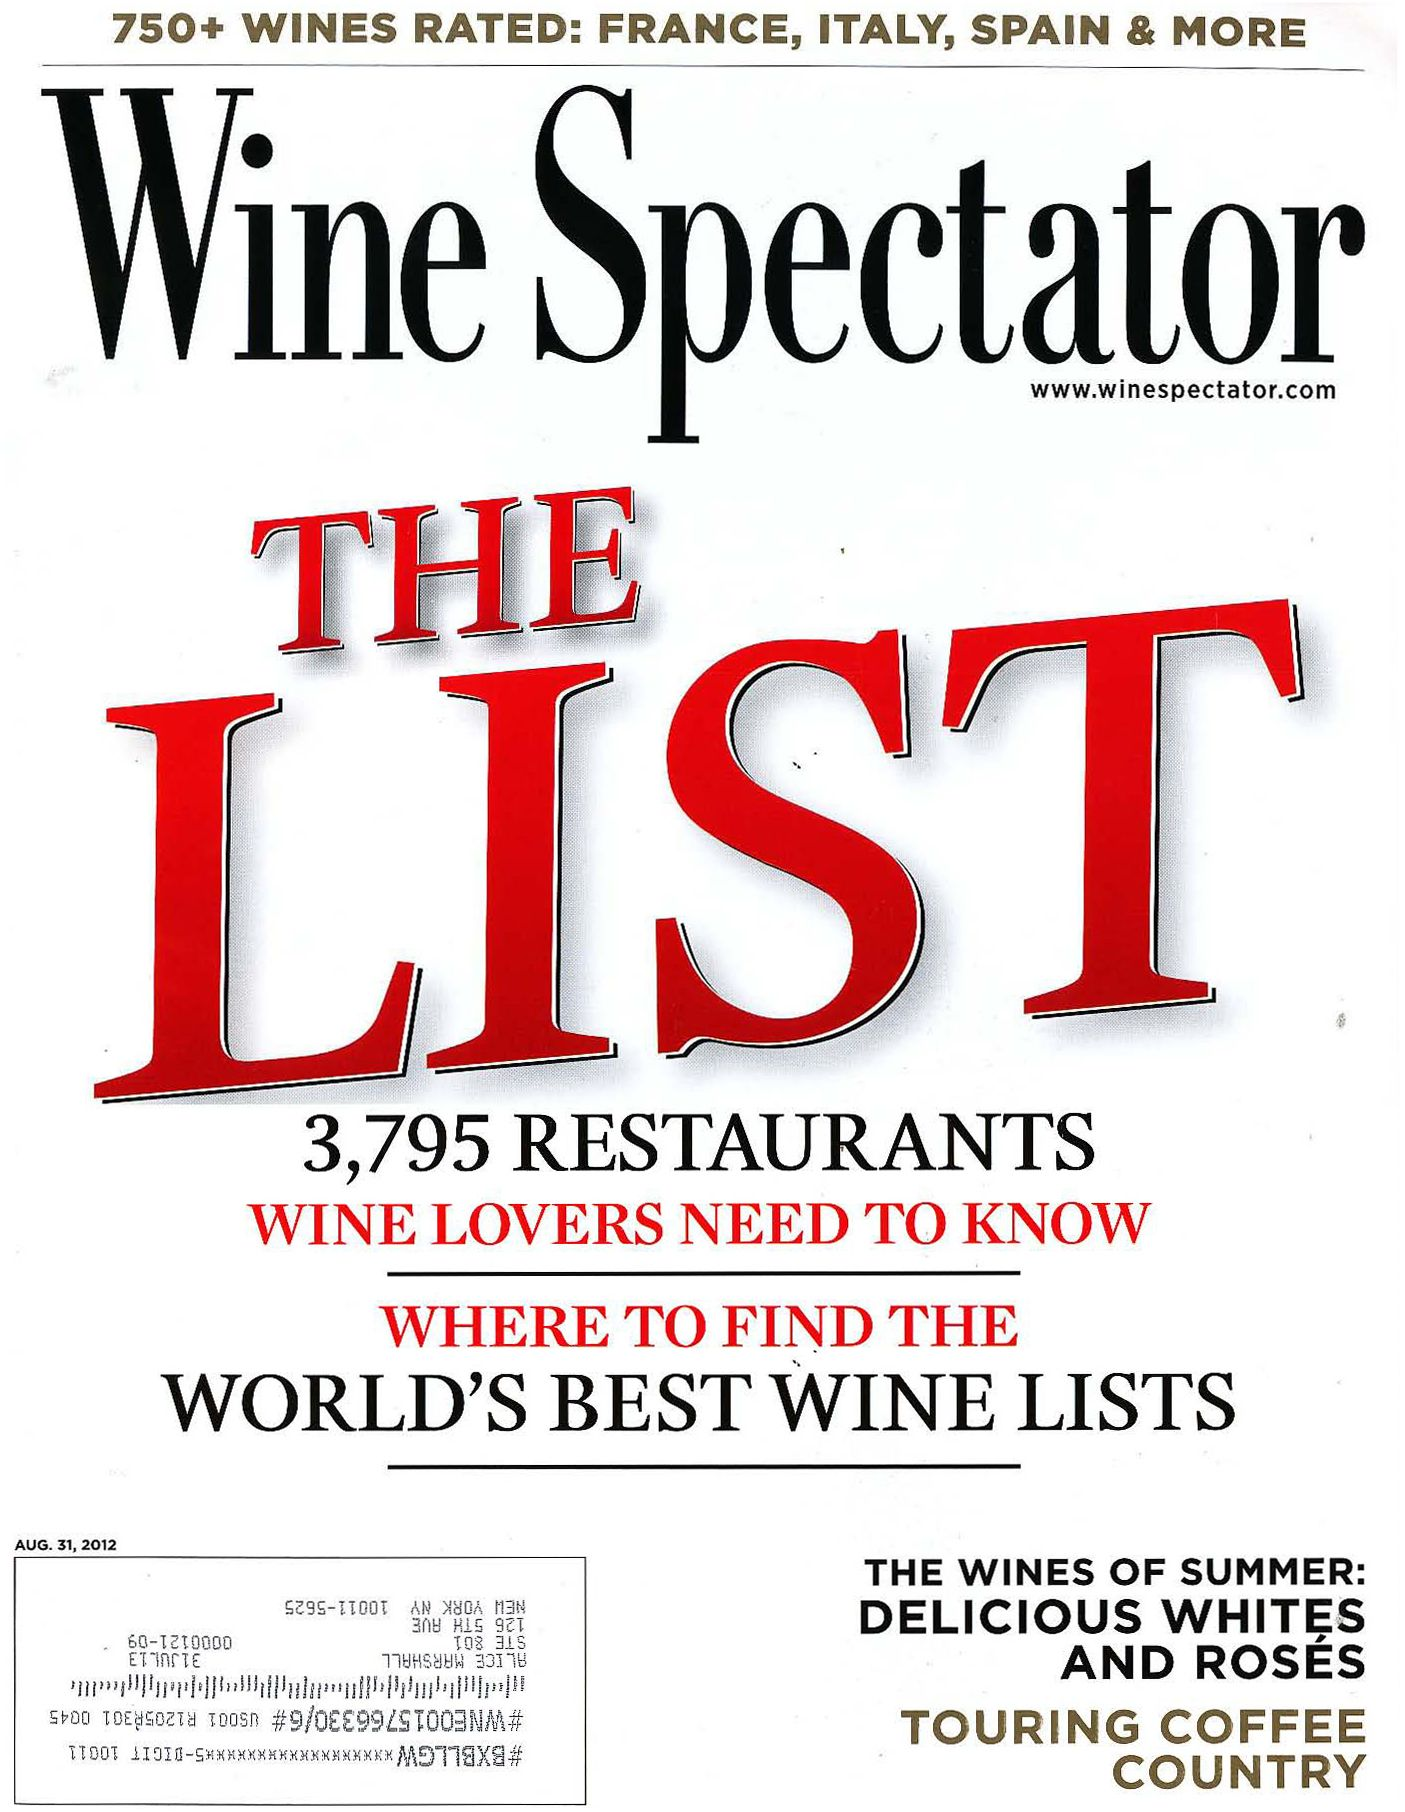 Topper S At The Wauwinet Has Won Wine Spectator S Grand Award For Its Outstanding Wine List For 16 Consecu Wine Spectator Wine List Wine Food Pairing